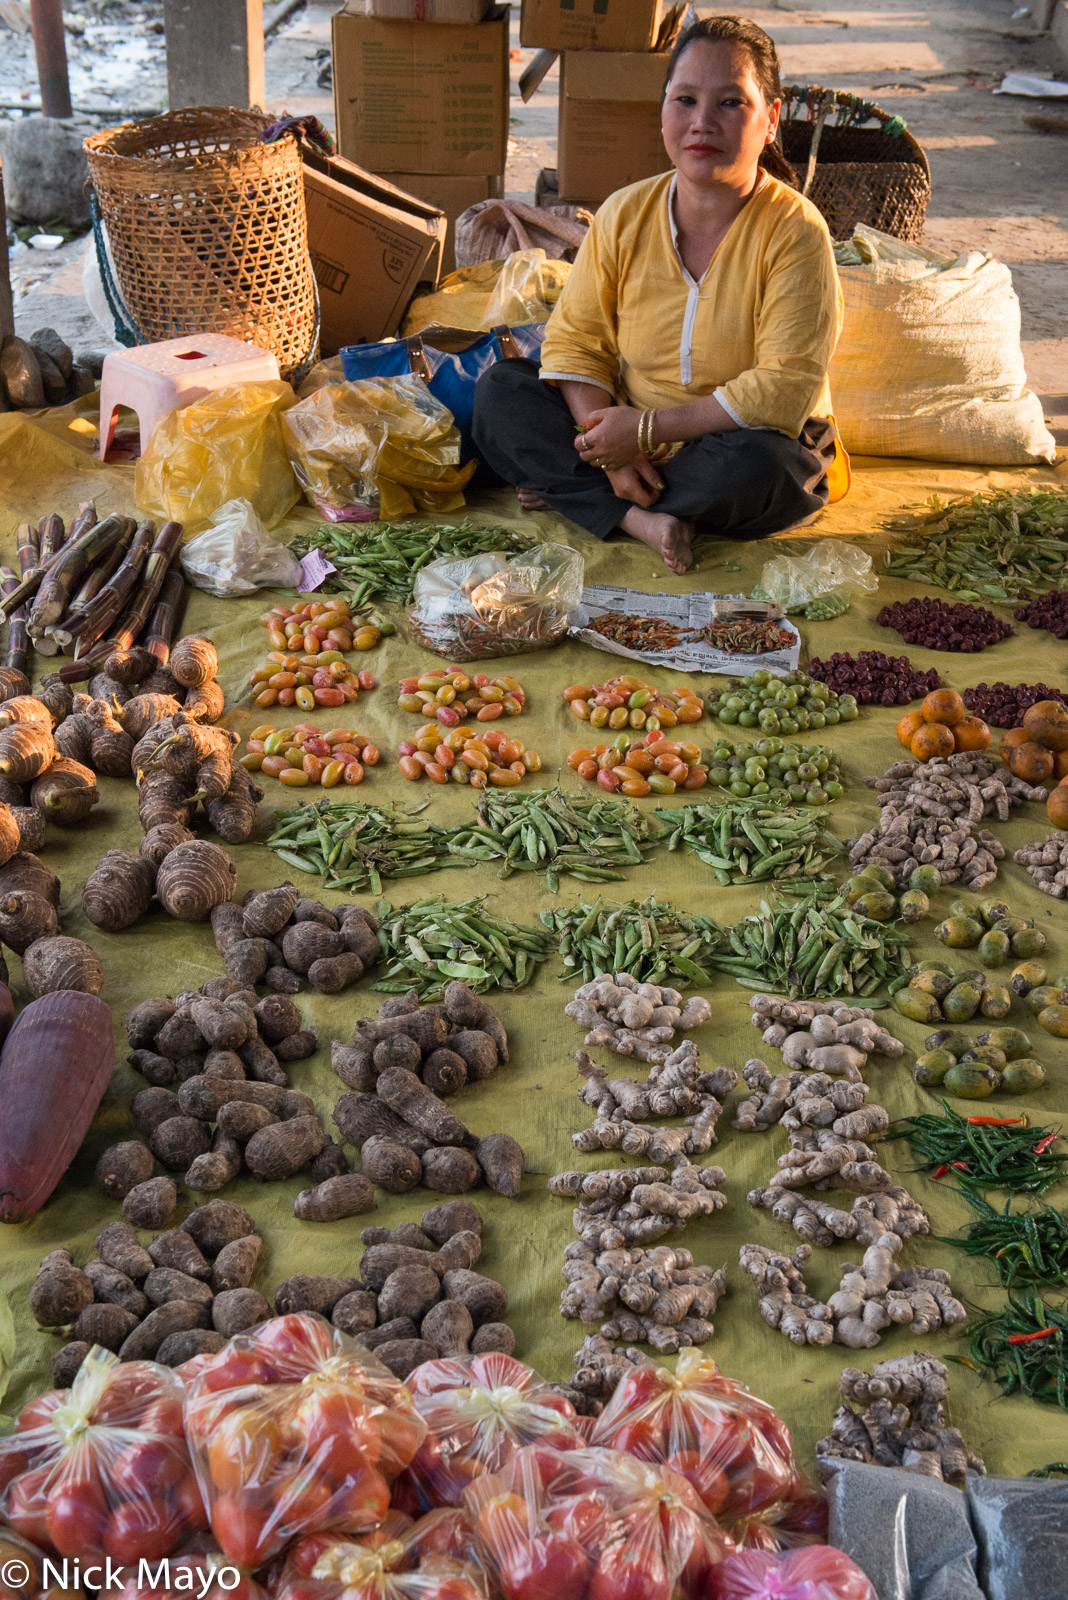 An Adi woman selling vegetables in the market at Roing.